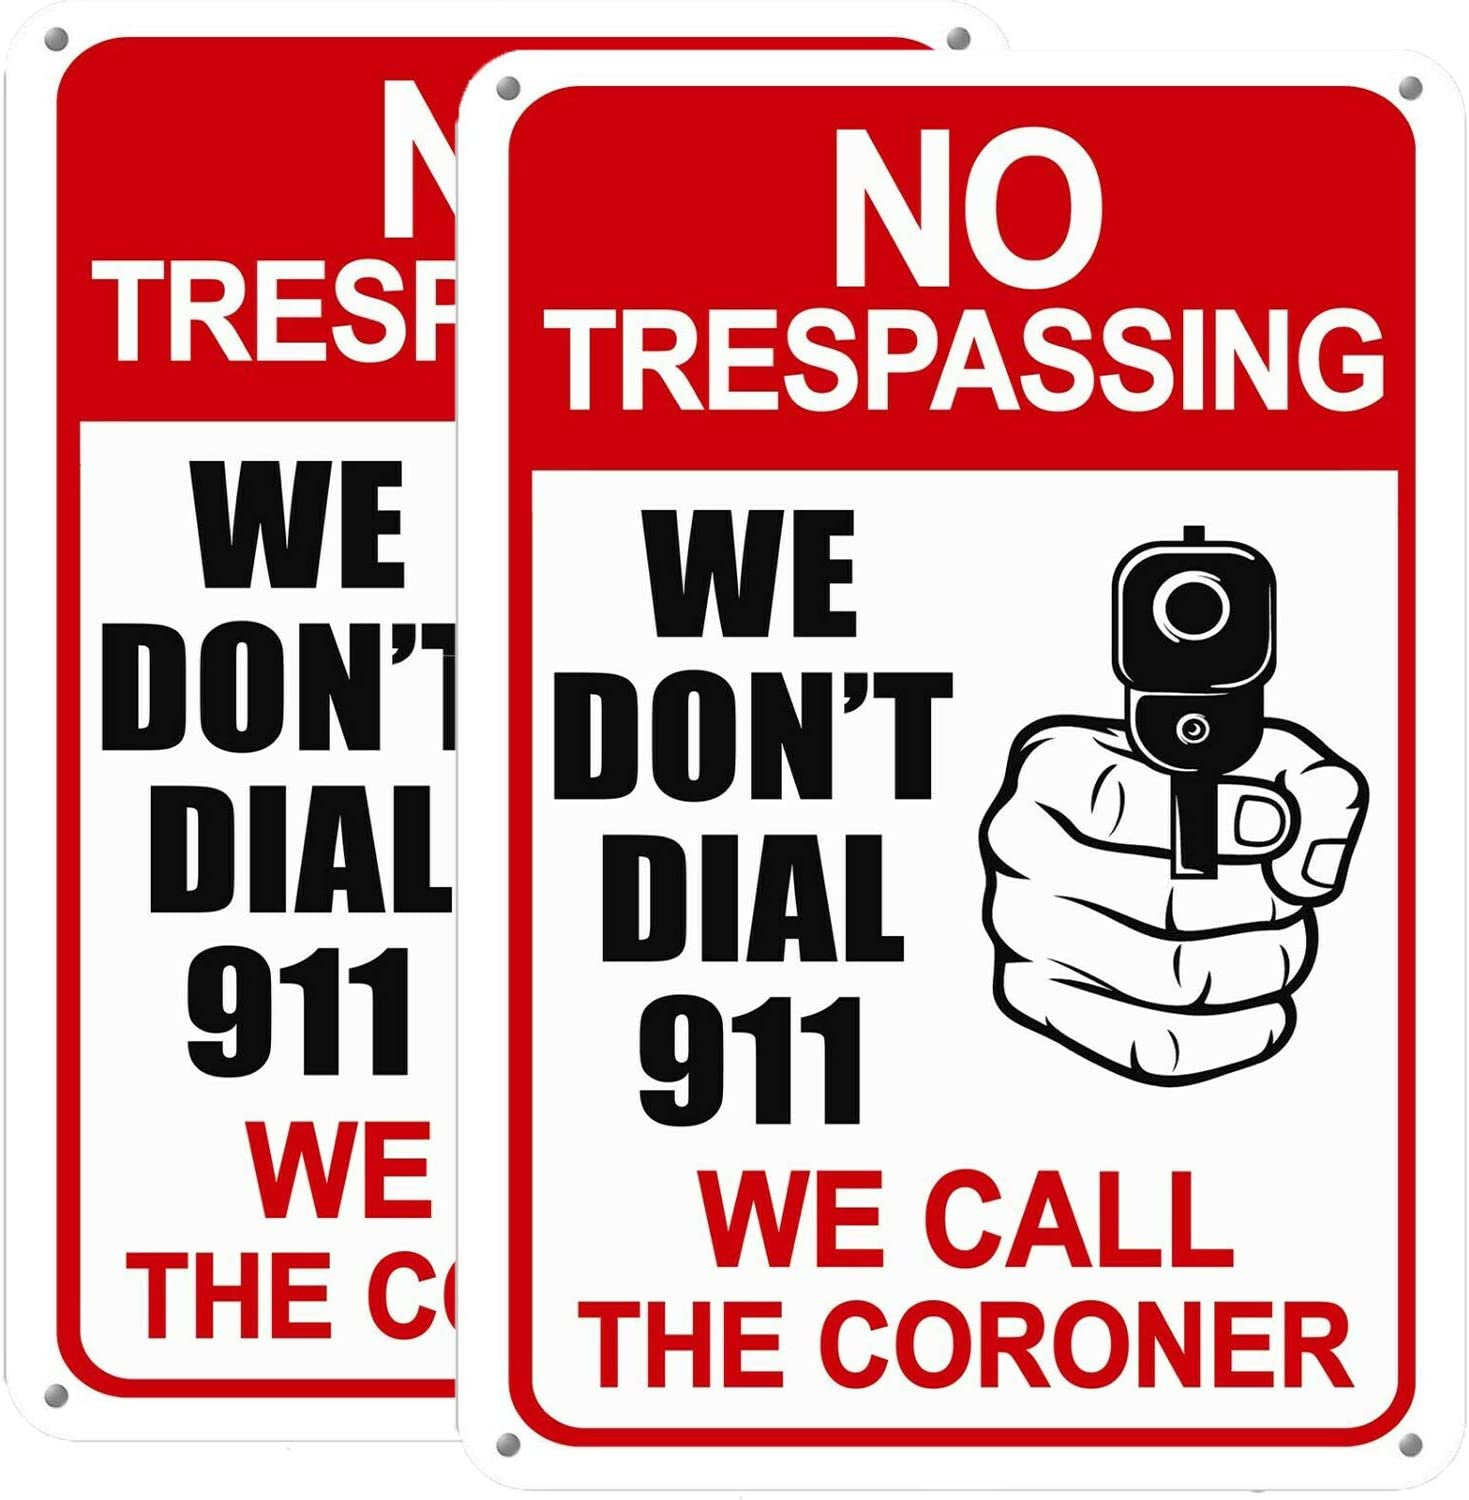 """2 Pack Gun Signs, No Trespassing Sign - We Don't Dial 911 We Call The Coroner, 10"""" x 7"""" Rust Free Aluminum, Metal Reflective, UV Protected & Waterproof, Weather/Fade Resistant, Indoor Or Outdoor Use"""